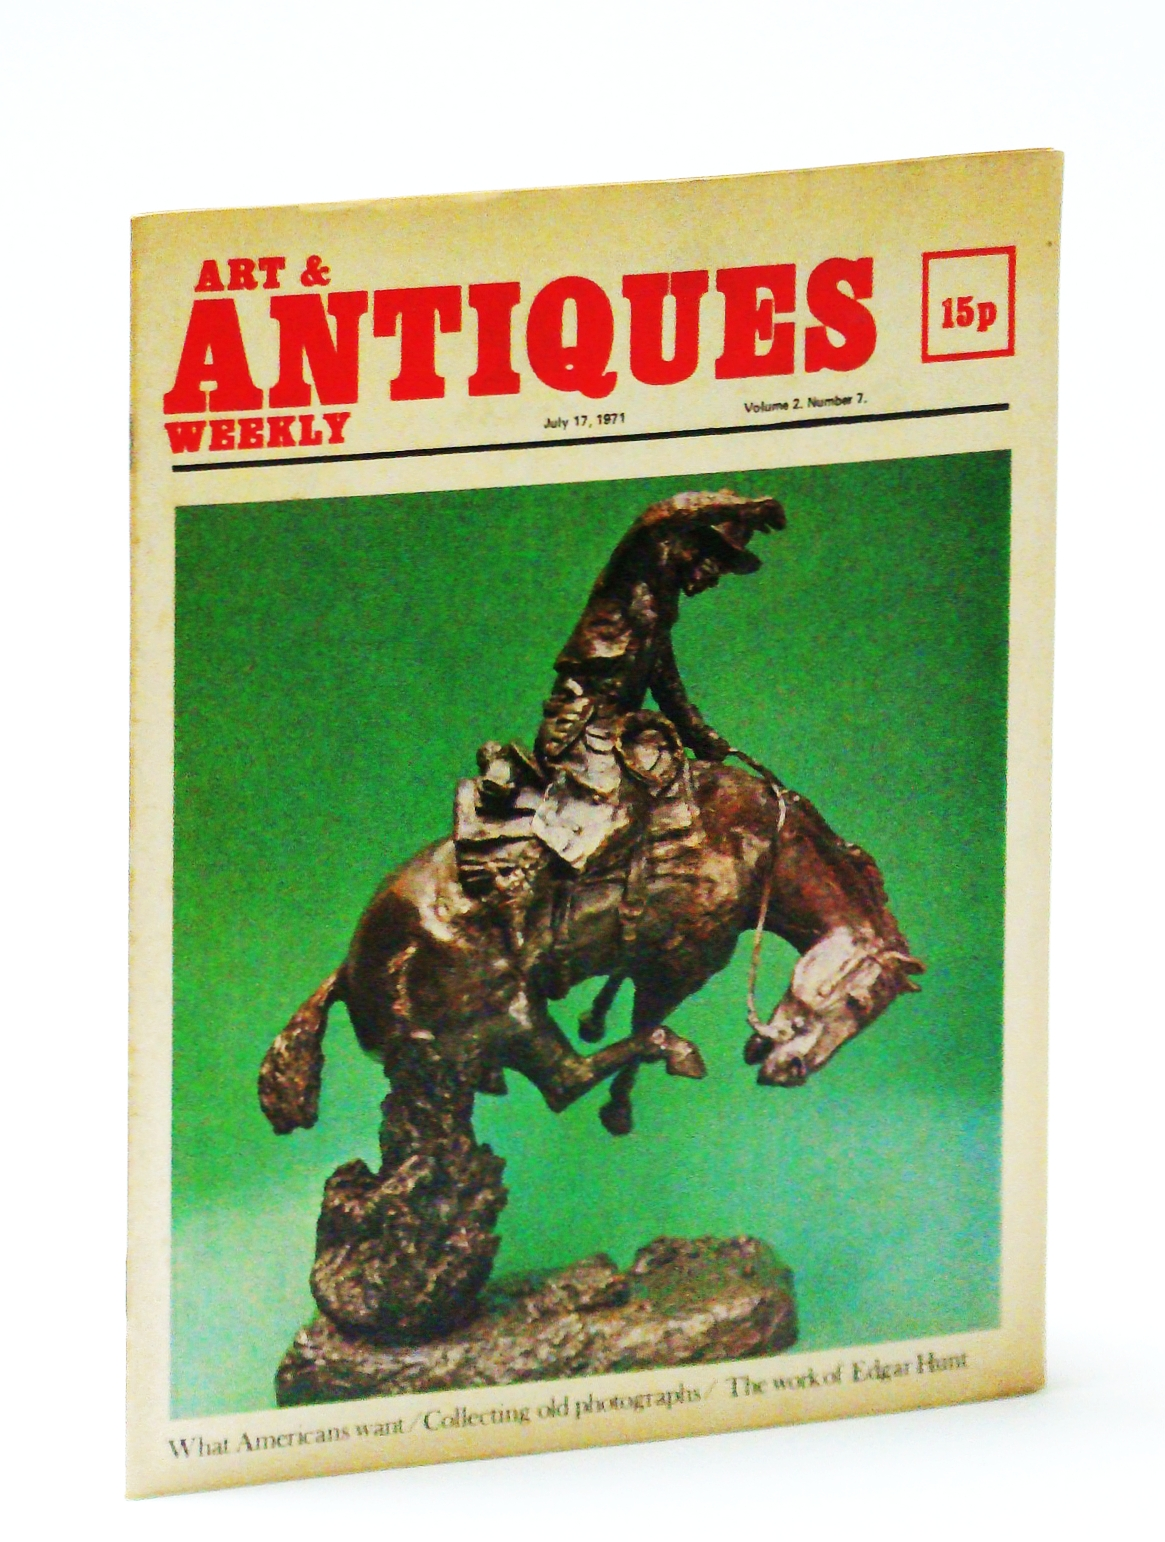 Image for Art & (and) Antiques Weekly, July 24, 1971: Artist James Ward